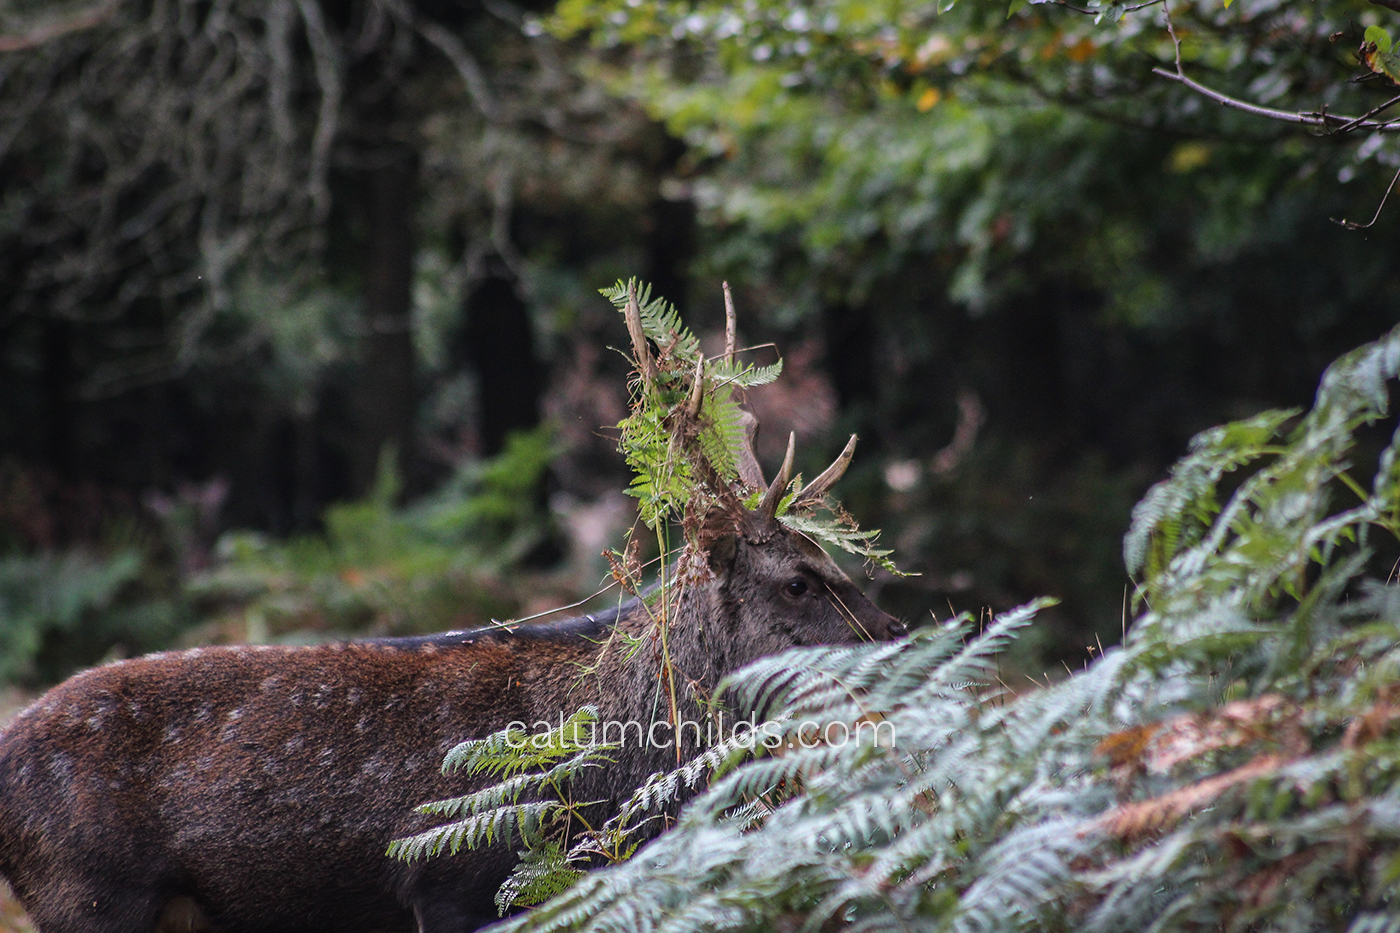 A male deer with medium-sized antlers containing parts of a fern plant looks ahead.